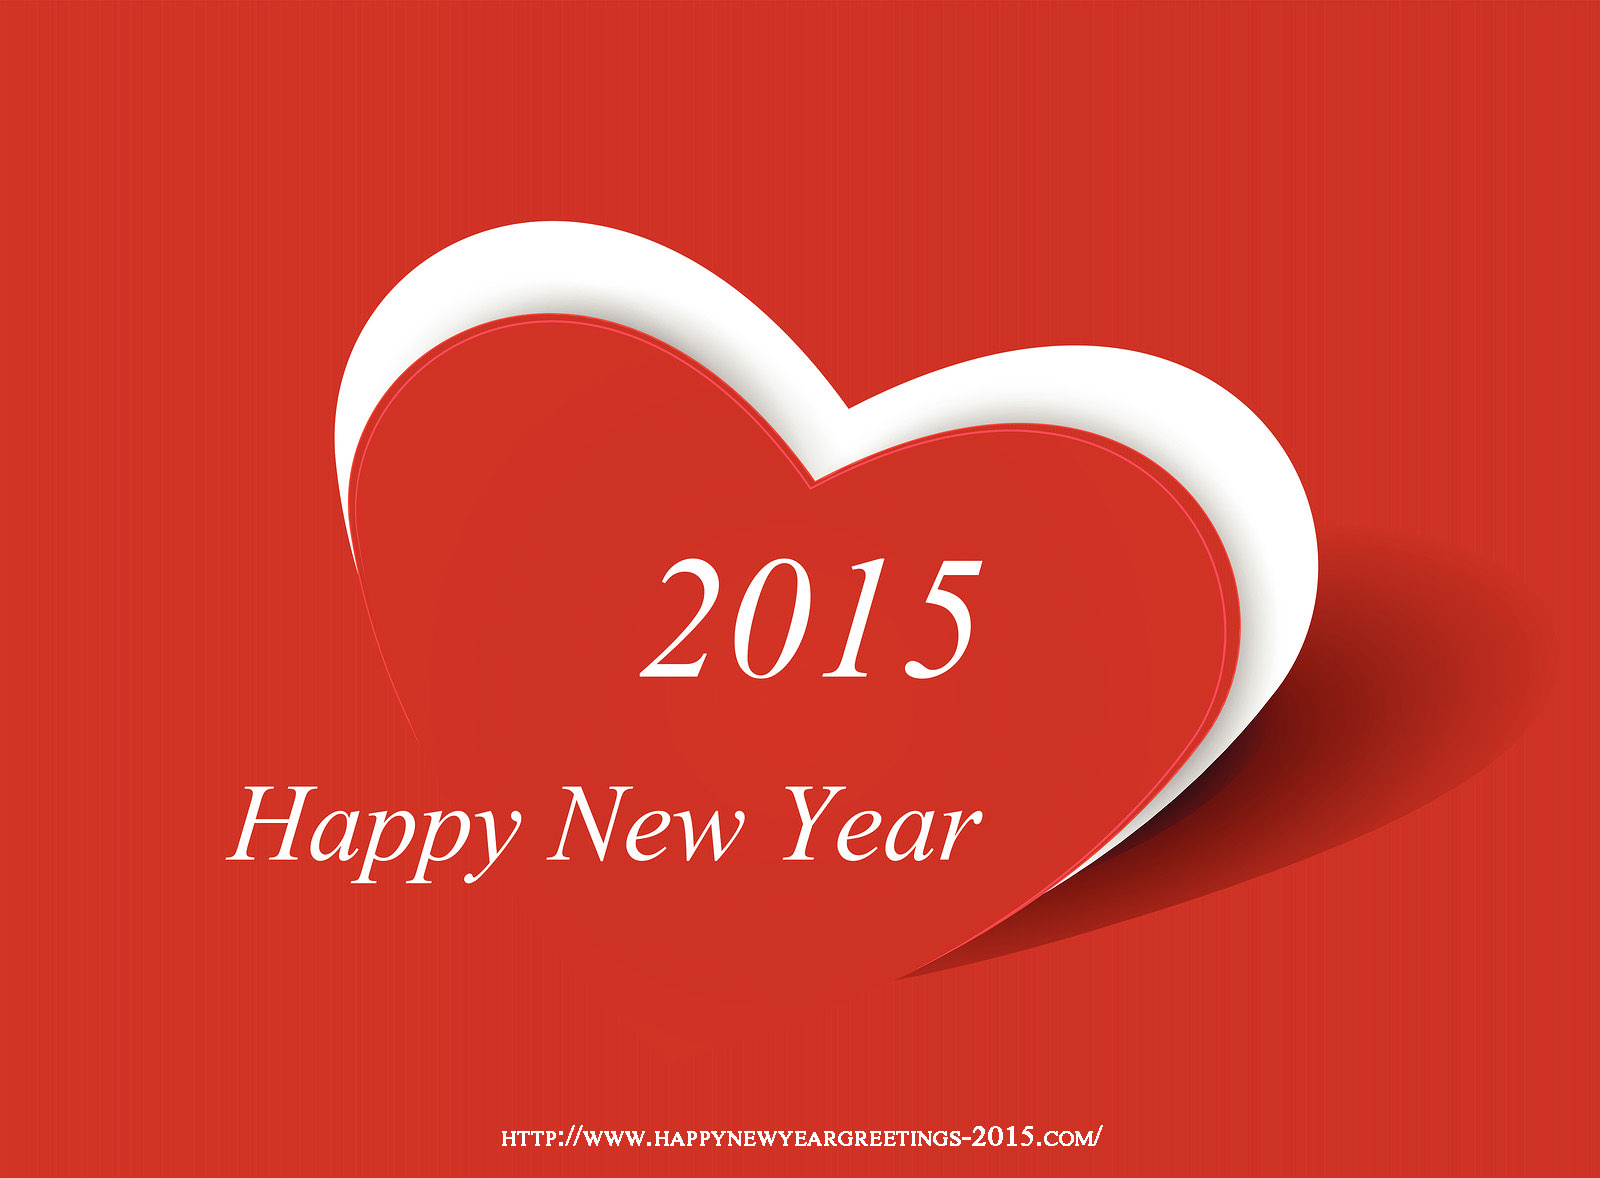 Happy new year greeting cards 2015 happy new year greeting cards happy new year greeting cards 2015 m4hsunfo